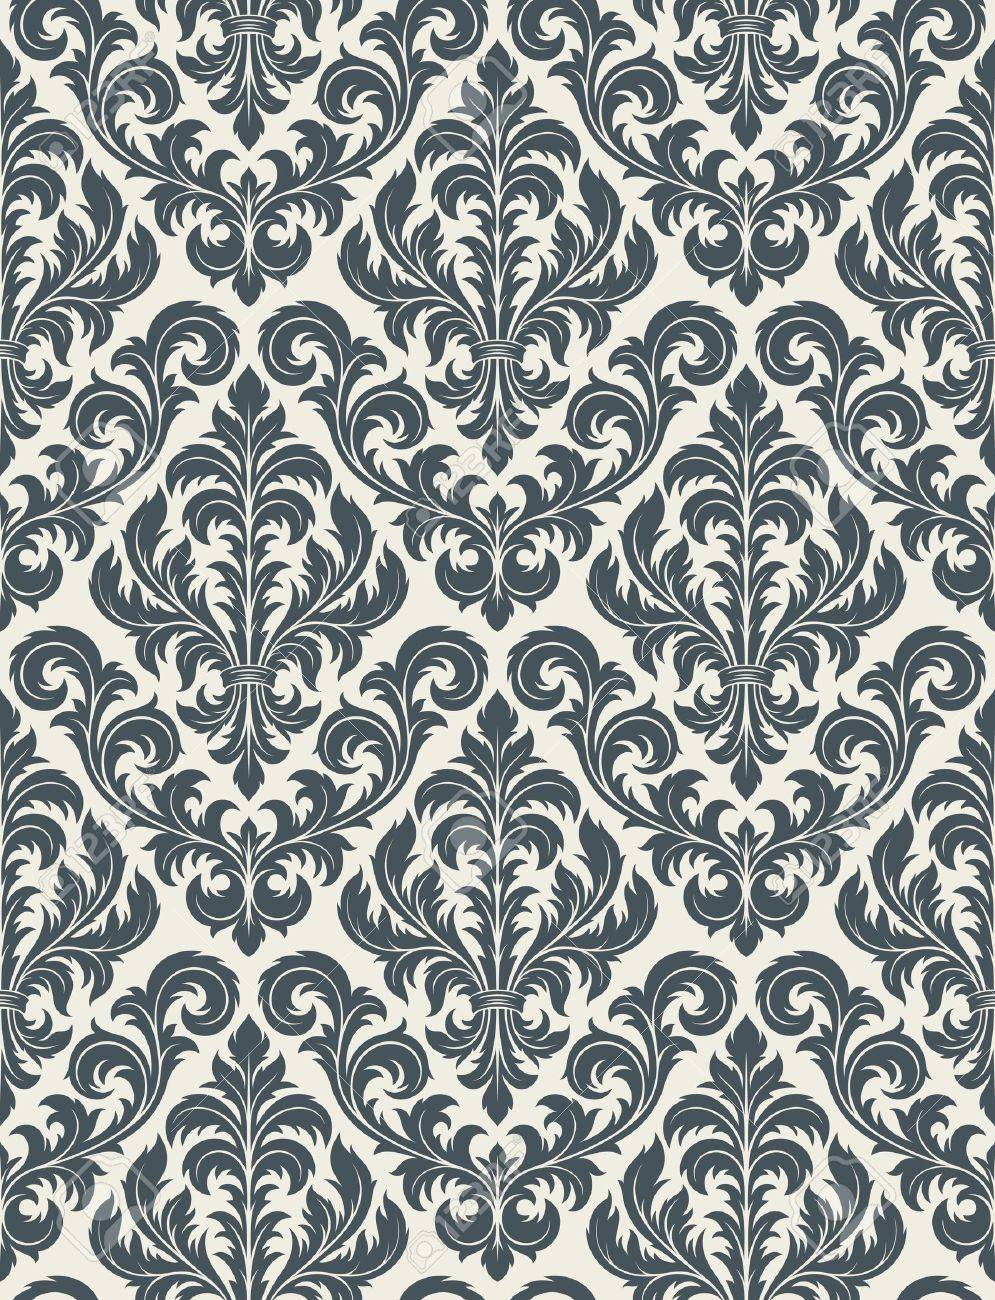 Seamless background from a floral ornament, Fashionable modern wallpaper or textile - 7103705